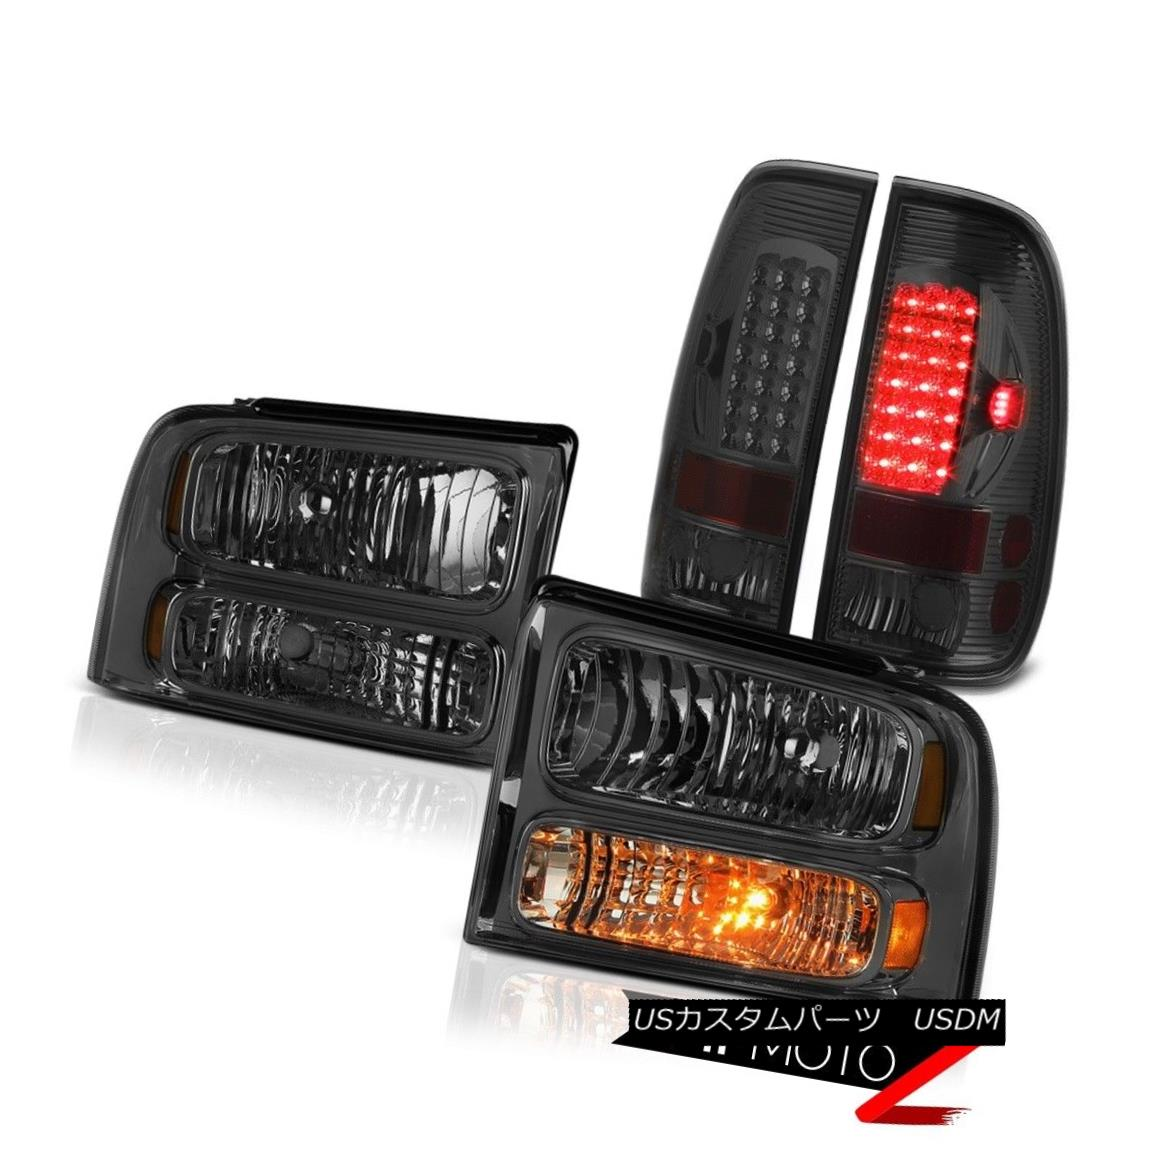 ヘッドライト Dark Smoke Replacement Headlights LED Tail Lights 2005 2006 2007 F250 Highline ダークスモーク代替ヘッドライトLEDテールライト2005 2006 2007 F250 Highline